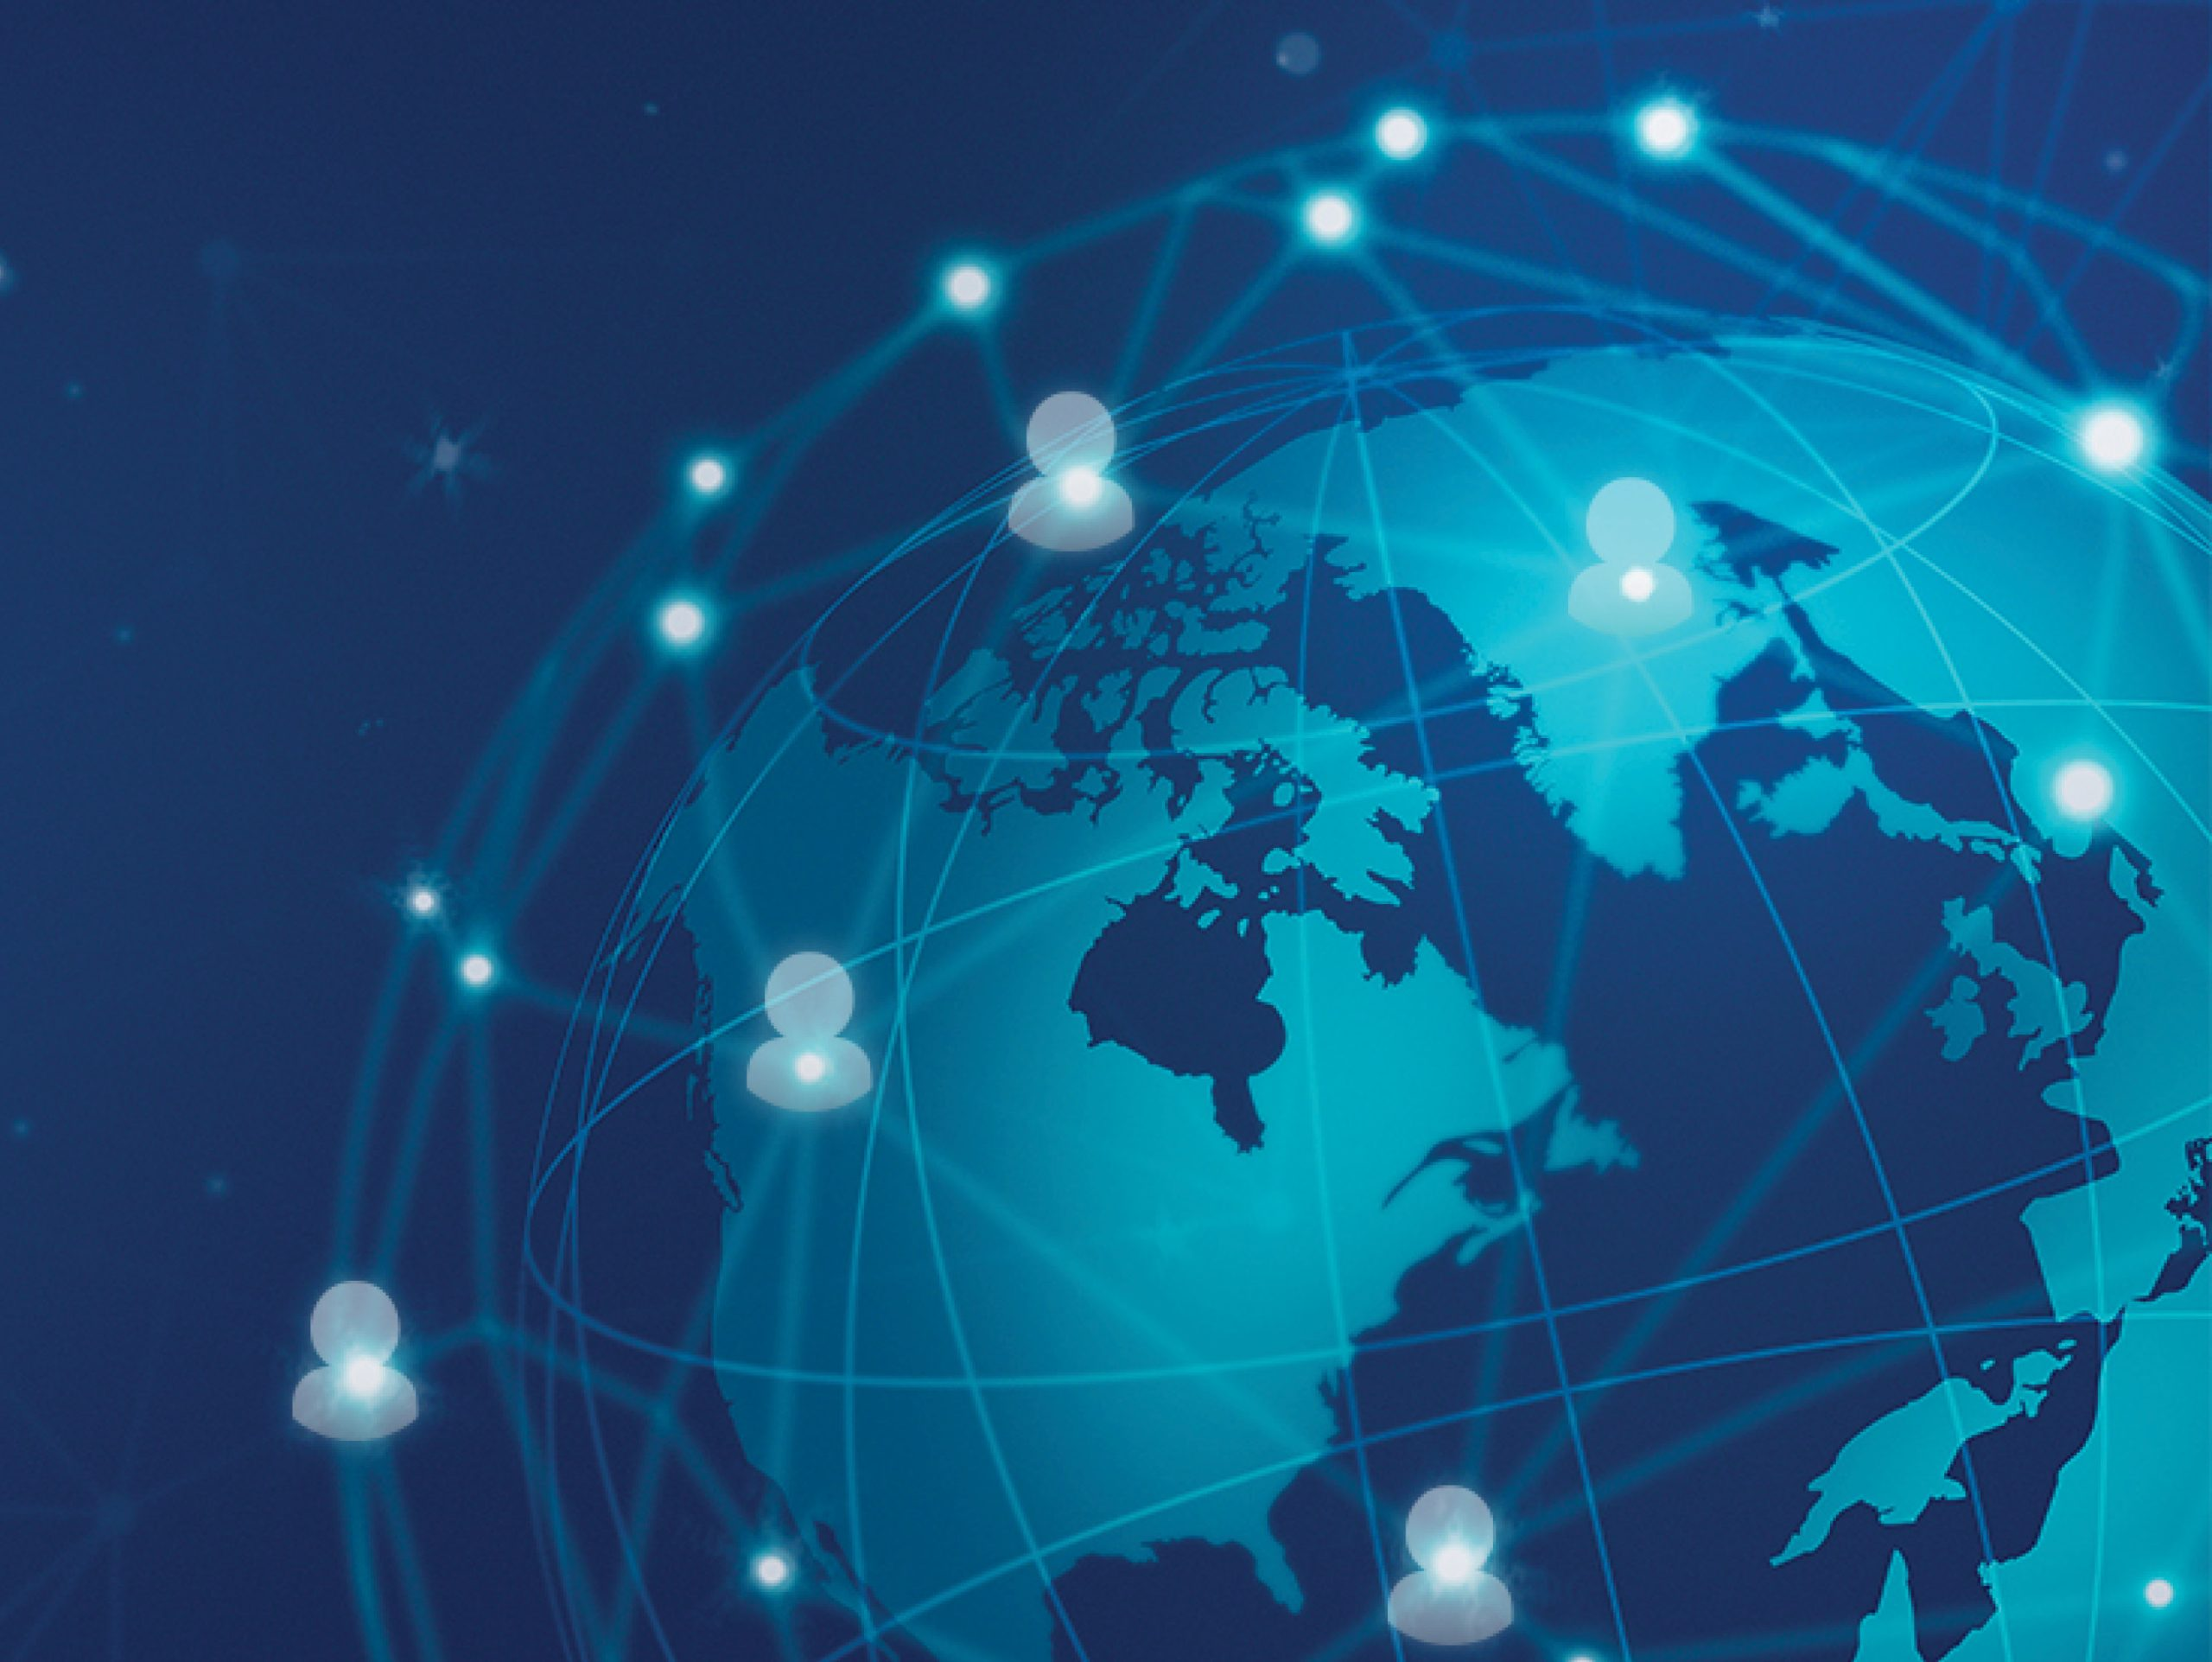 Global Talent Management: Strategies to Leverage the Global Talent Community